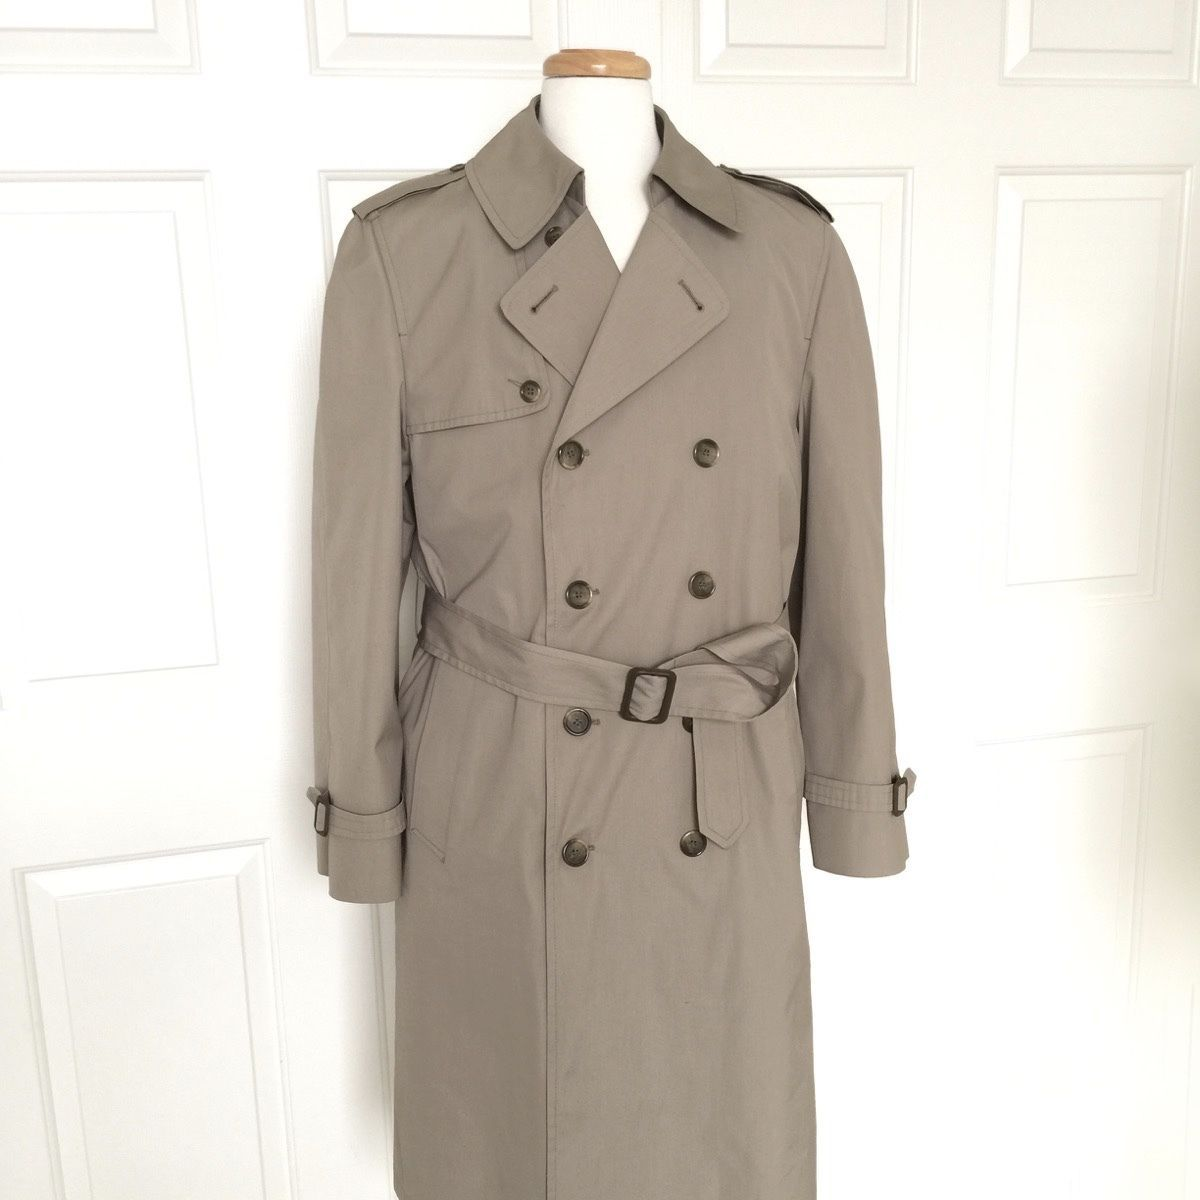 LONDON FOG Trench Coat Mens Raincoat Vintage 40 R Double Breasted Belted Tan USA